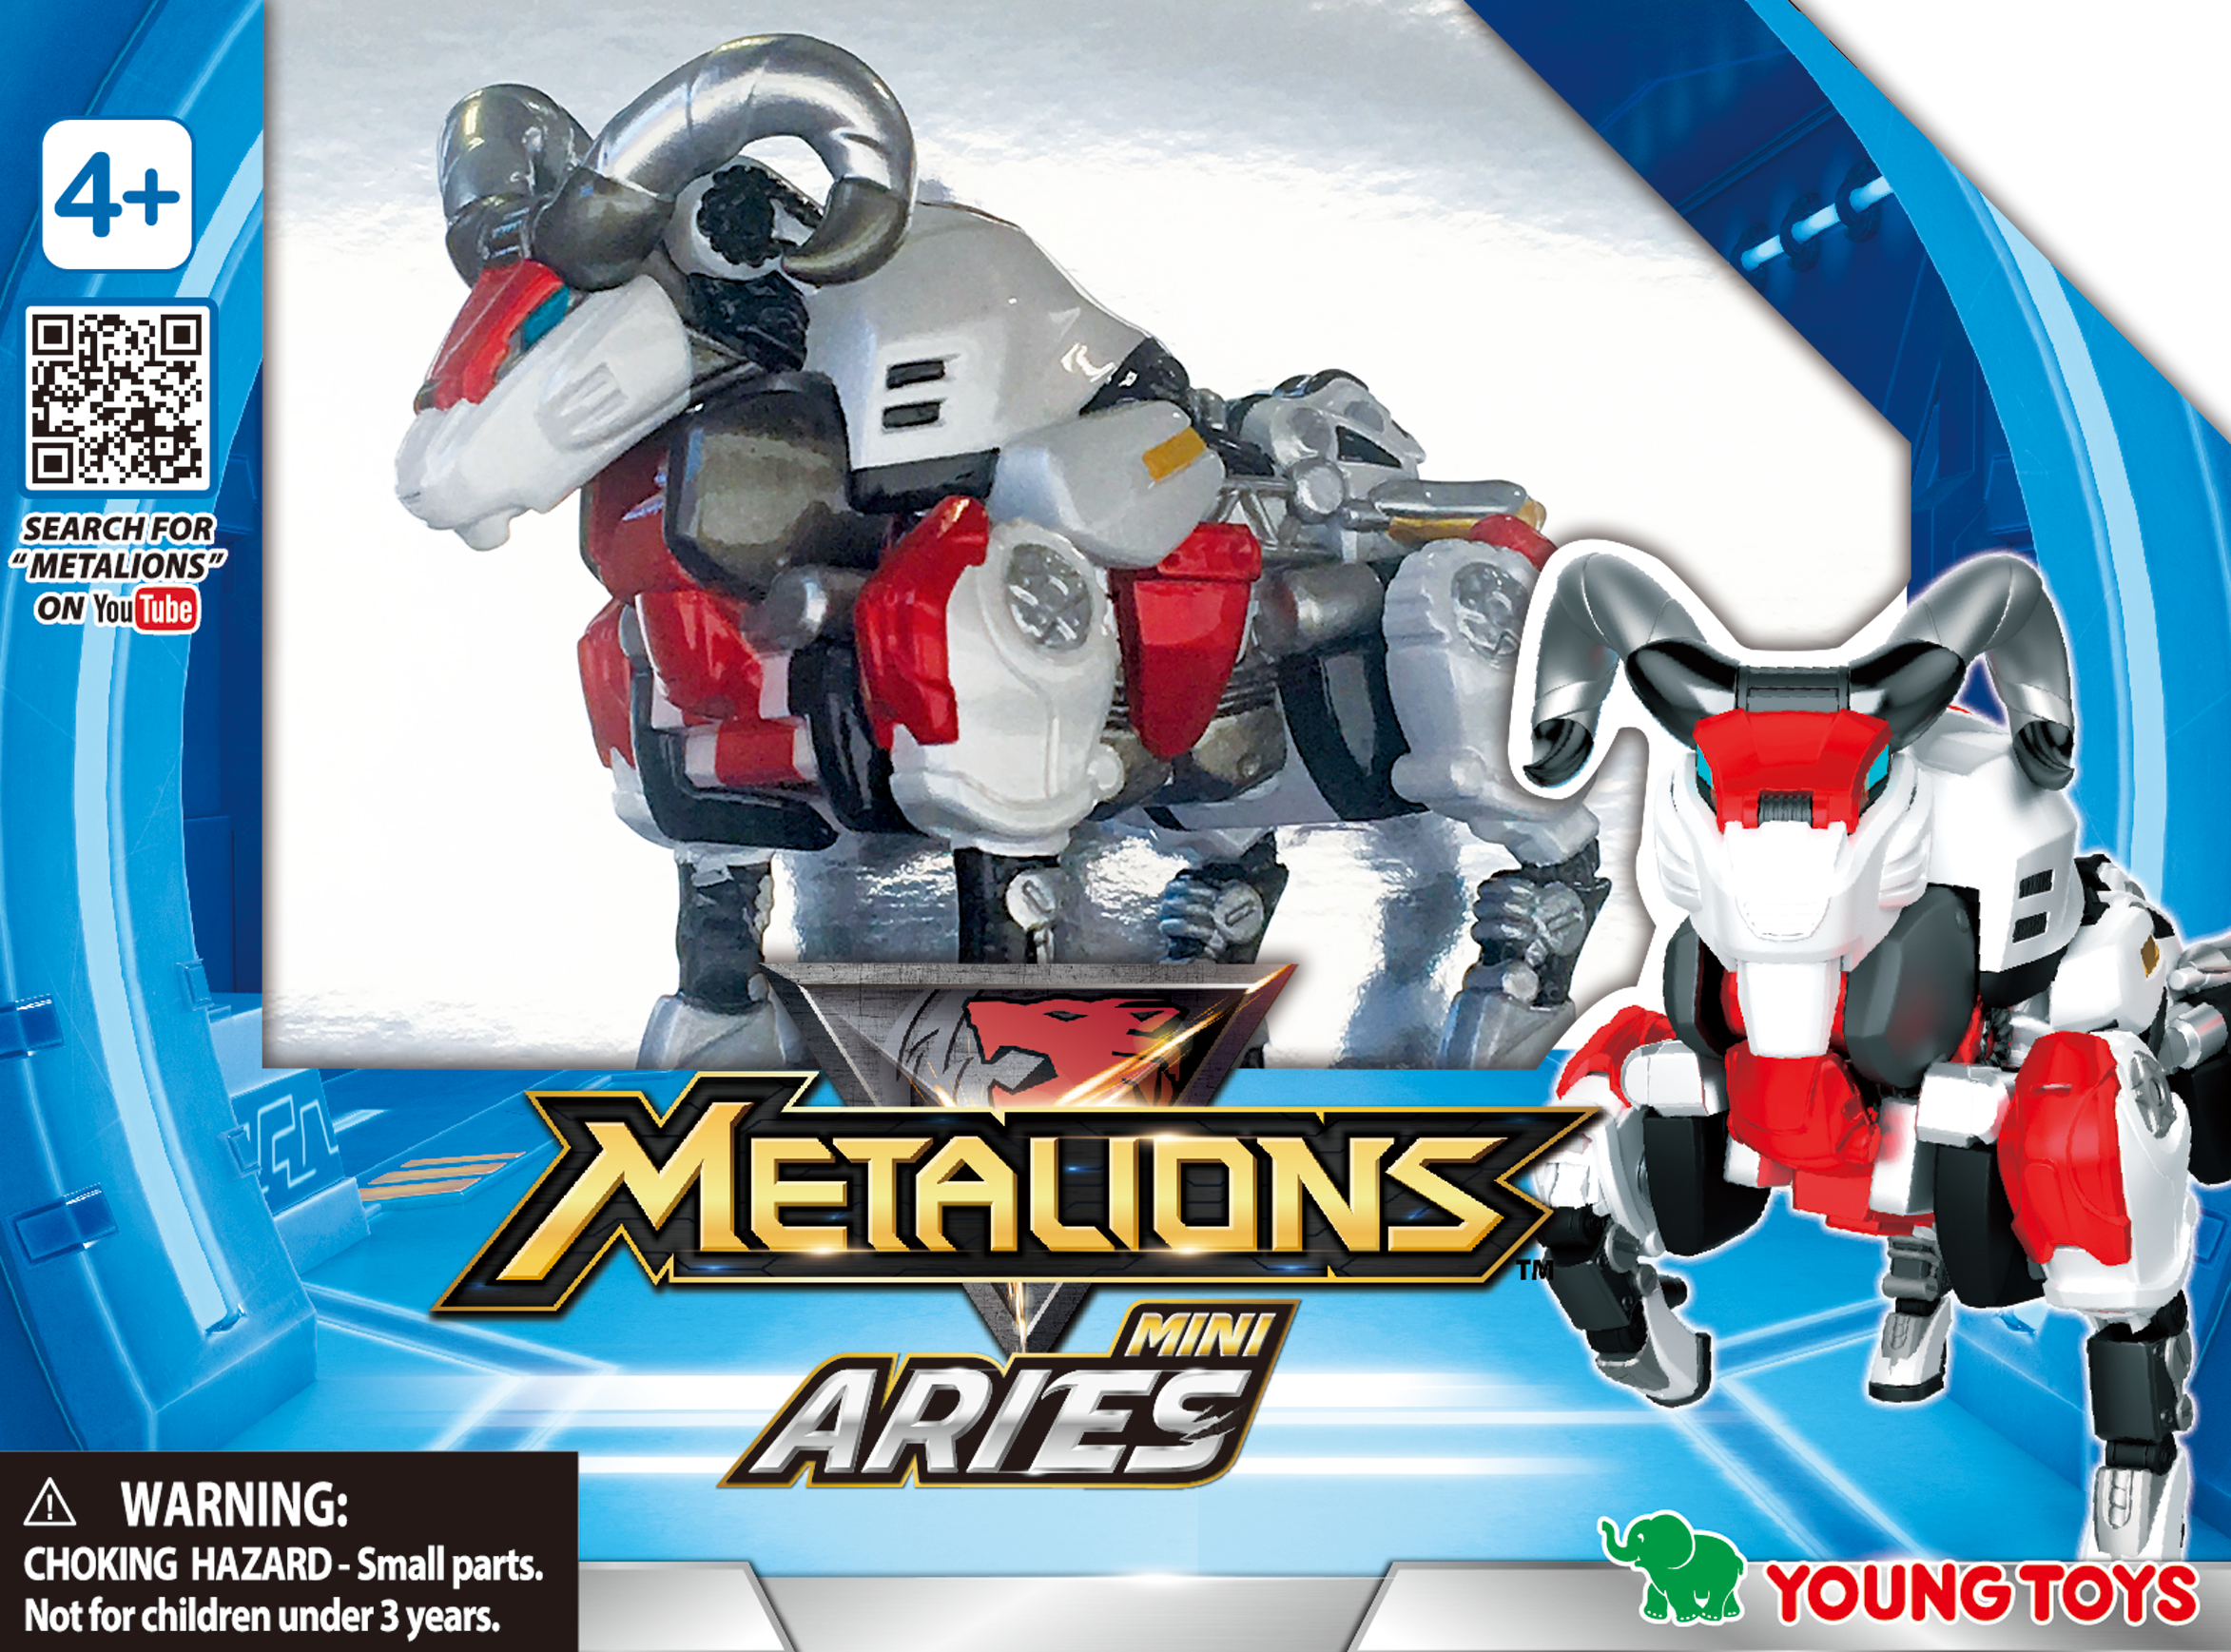 YOUNG TOYS METALIONS Mini Aries Action Figure